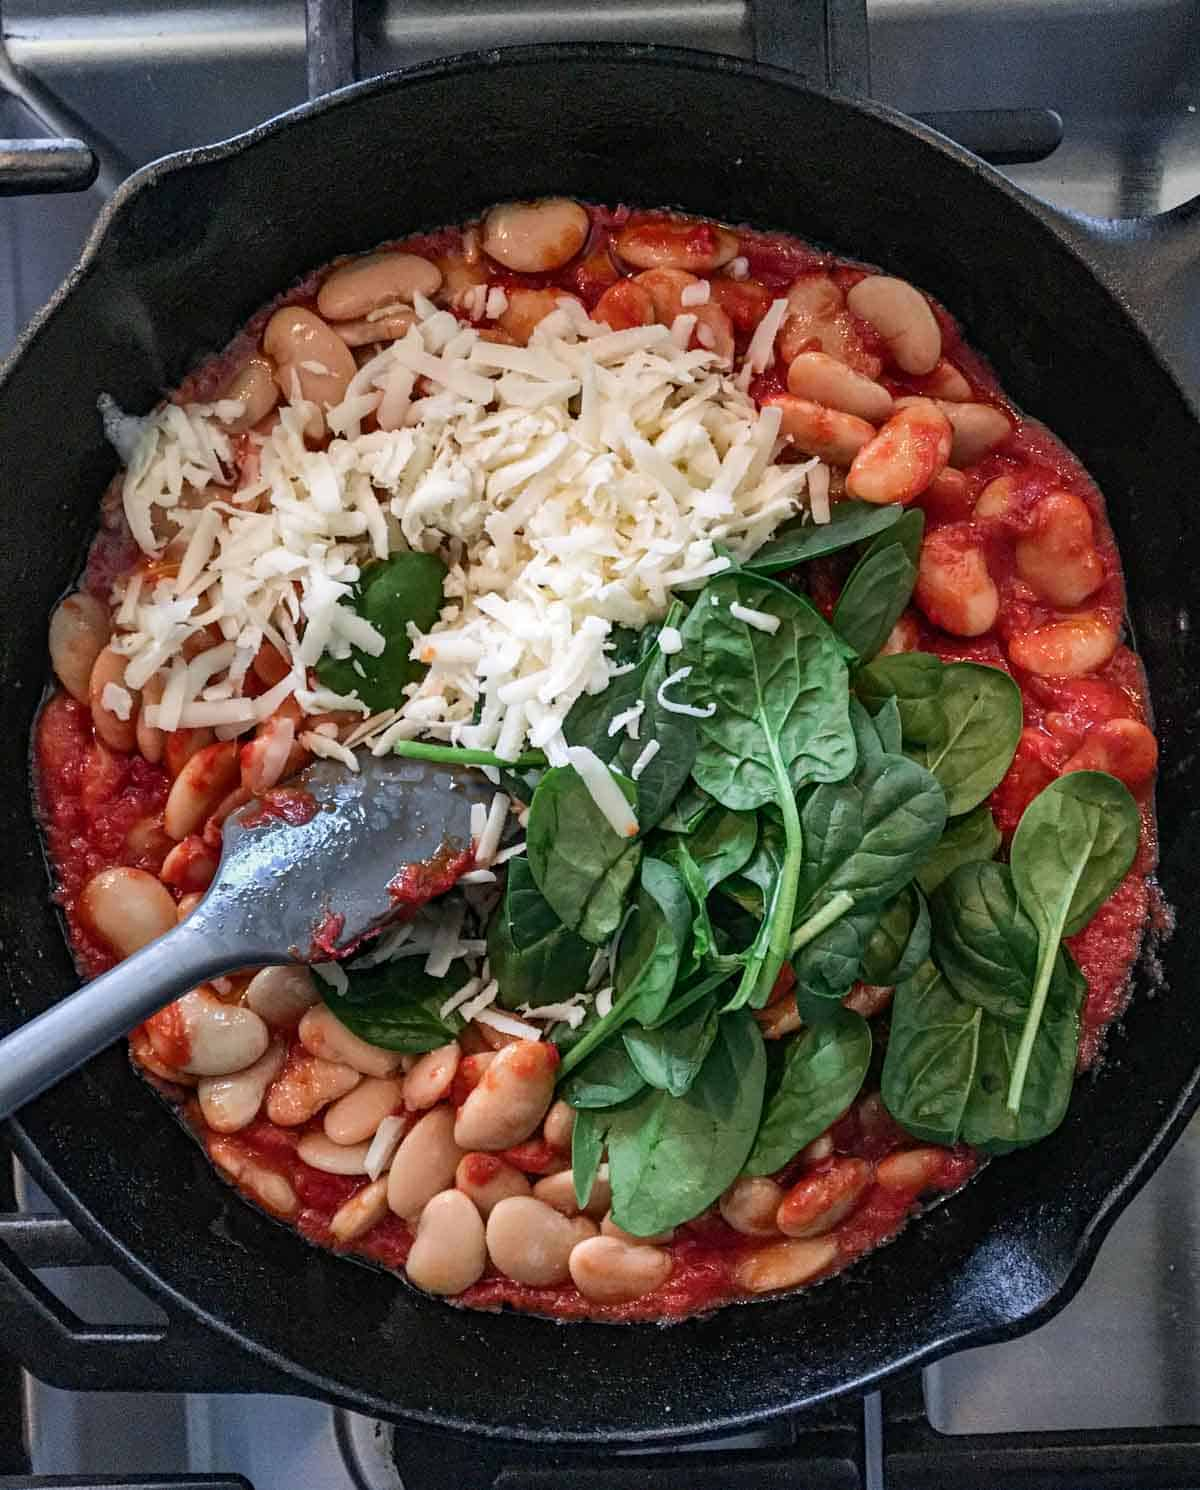 cast iron skillet filled with canned butter beans, tomato paste, spinach and grated cheese